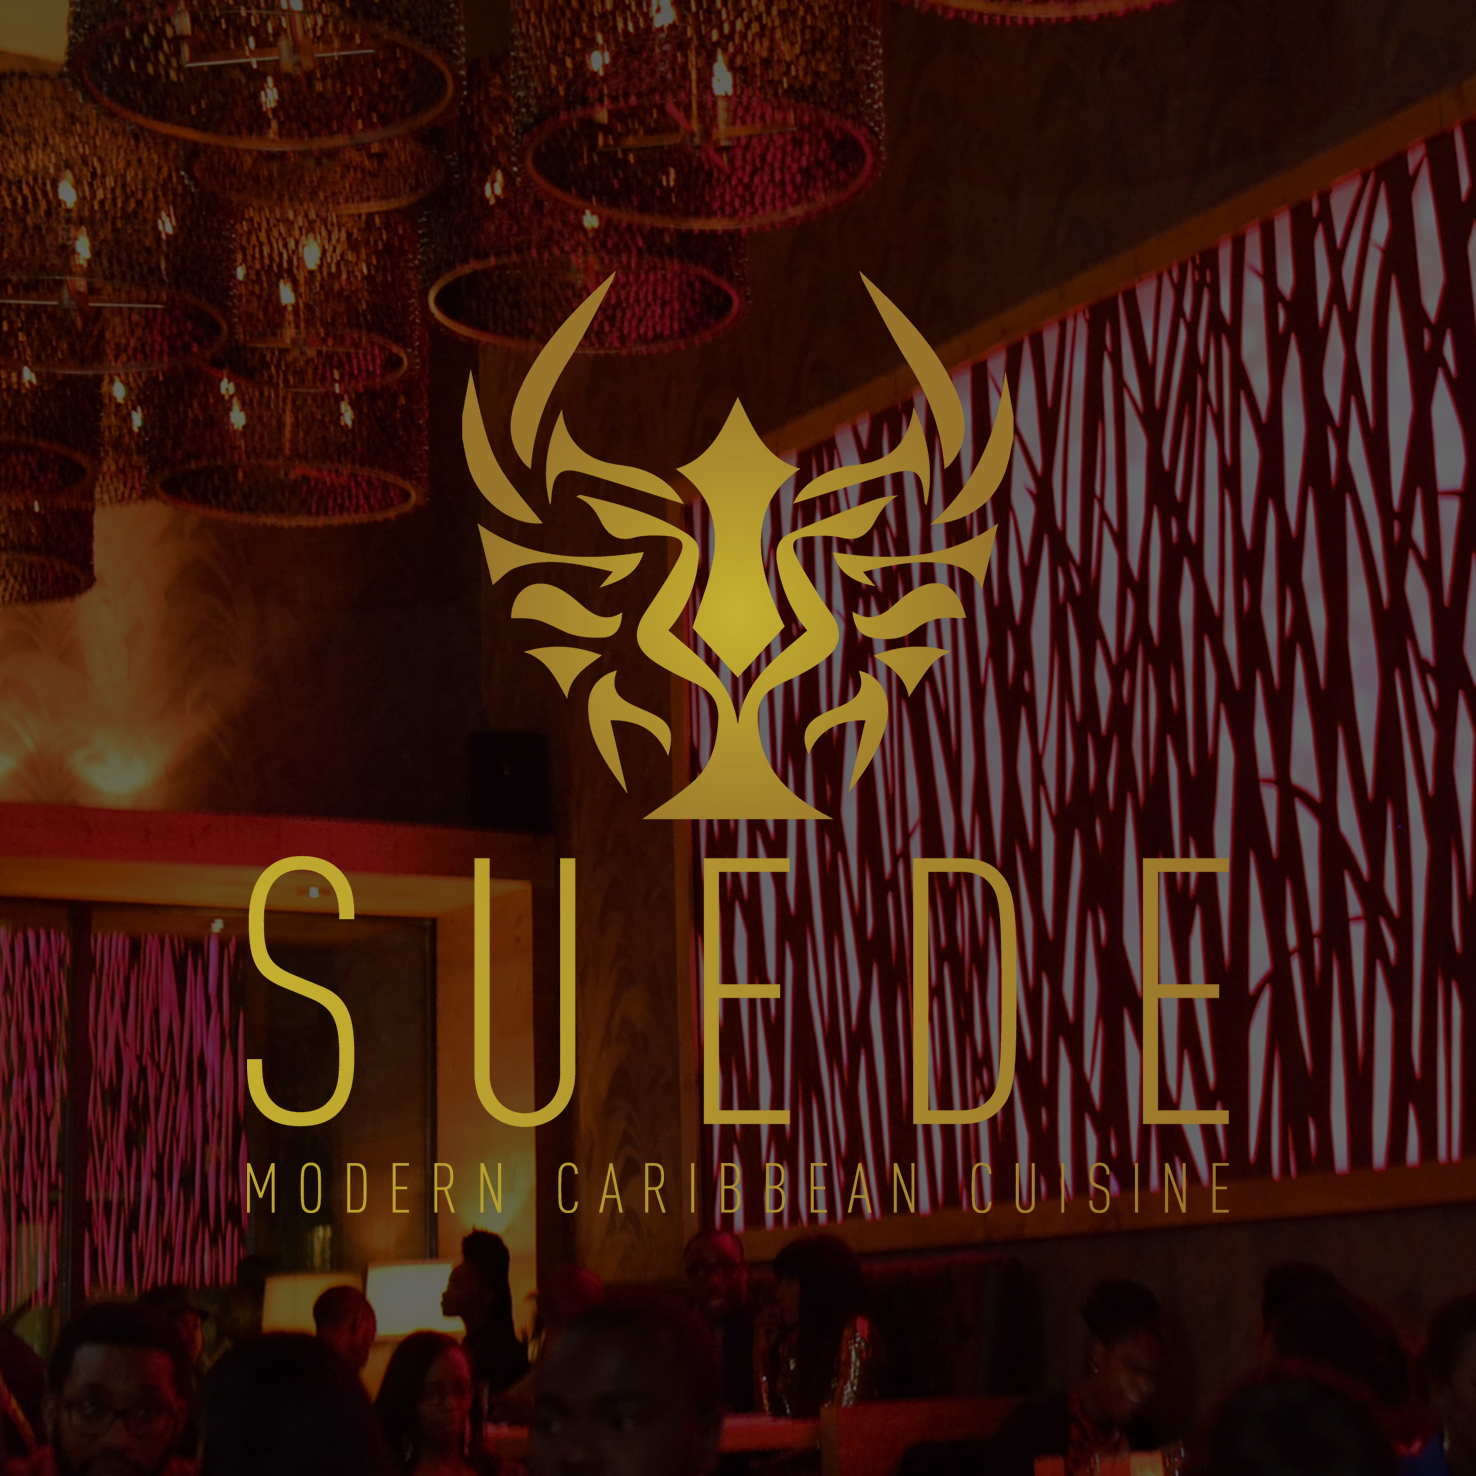 Suede Hospitality Group